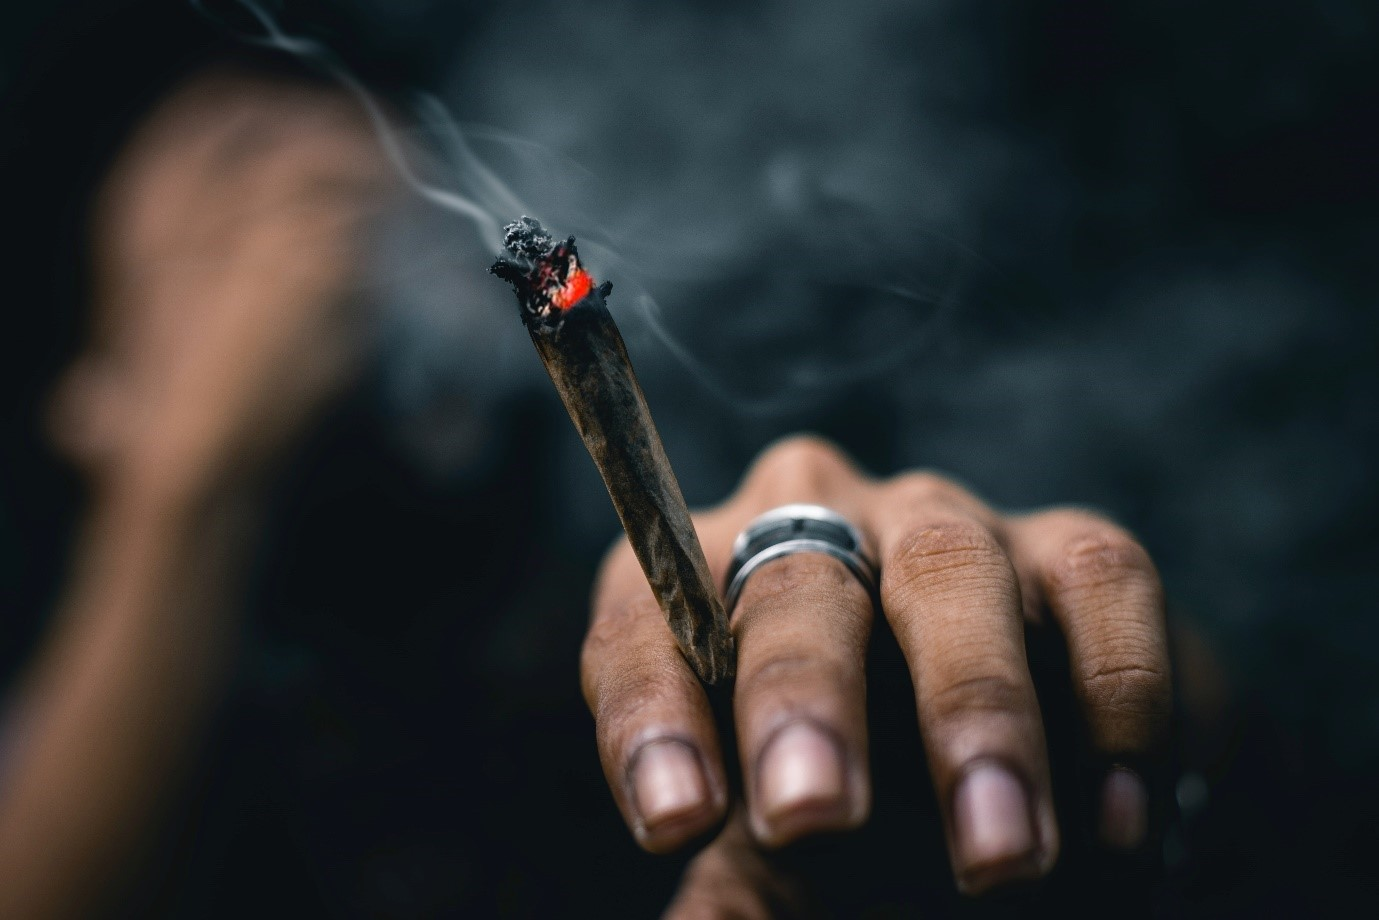 A person holding a lit joint